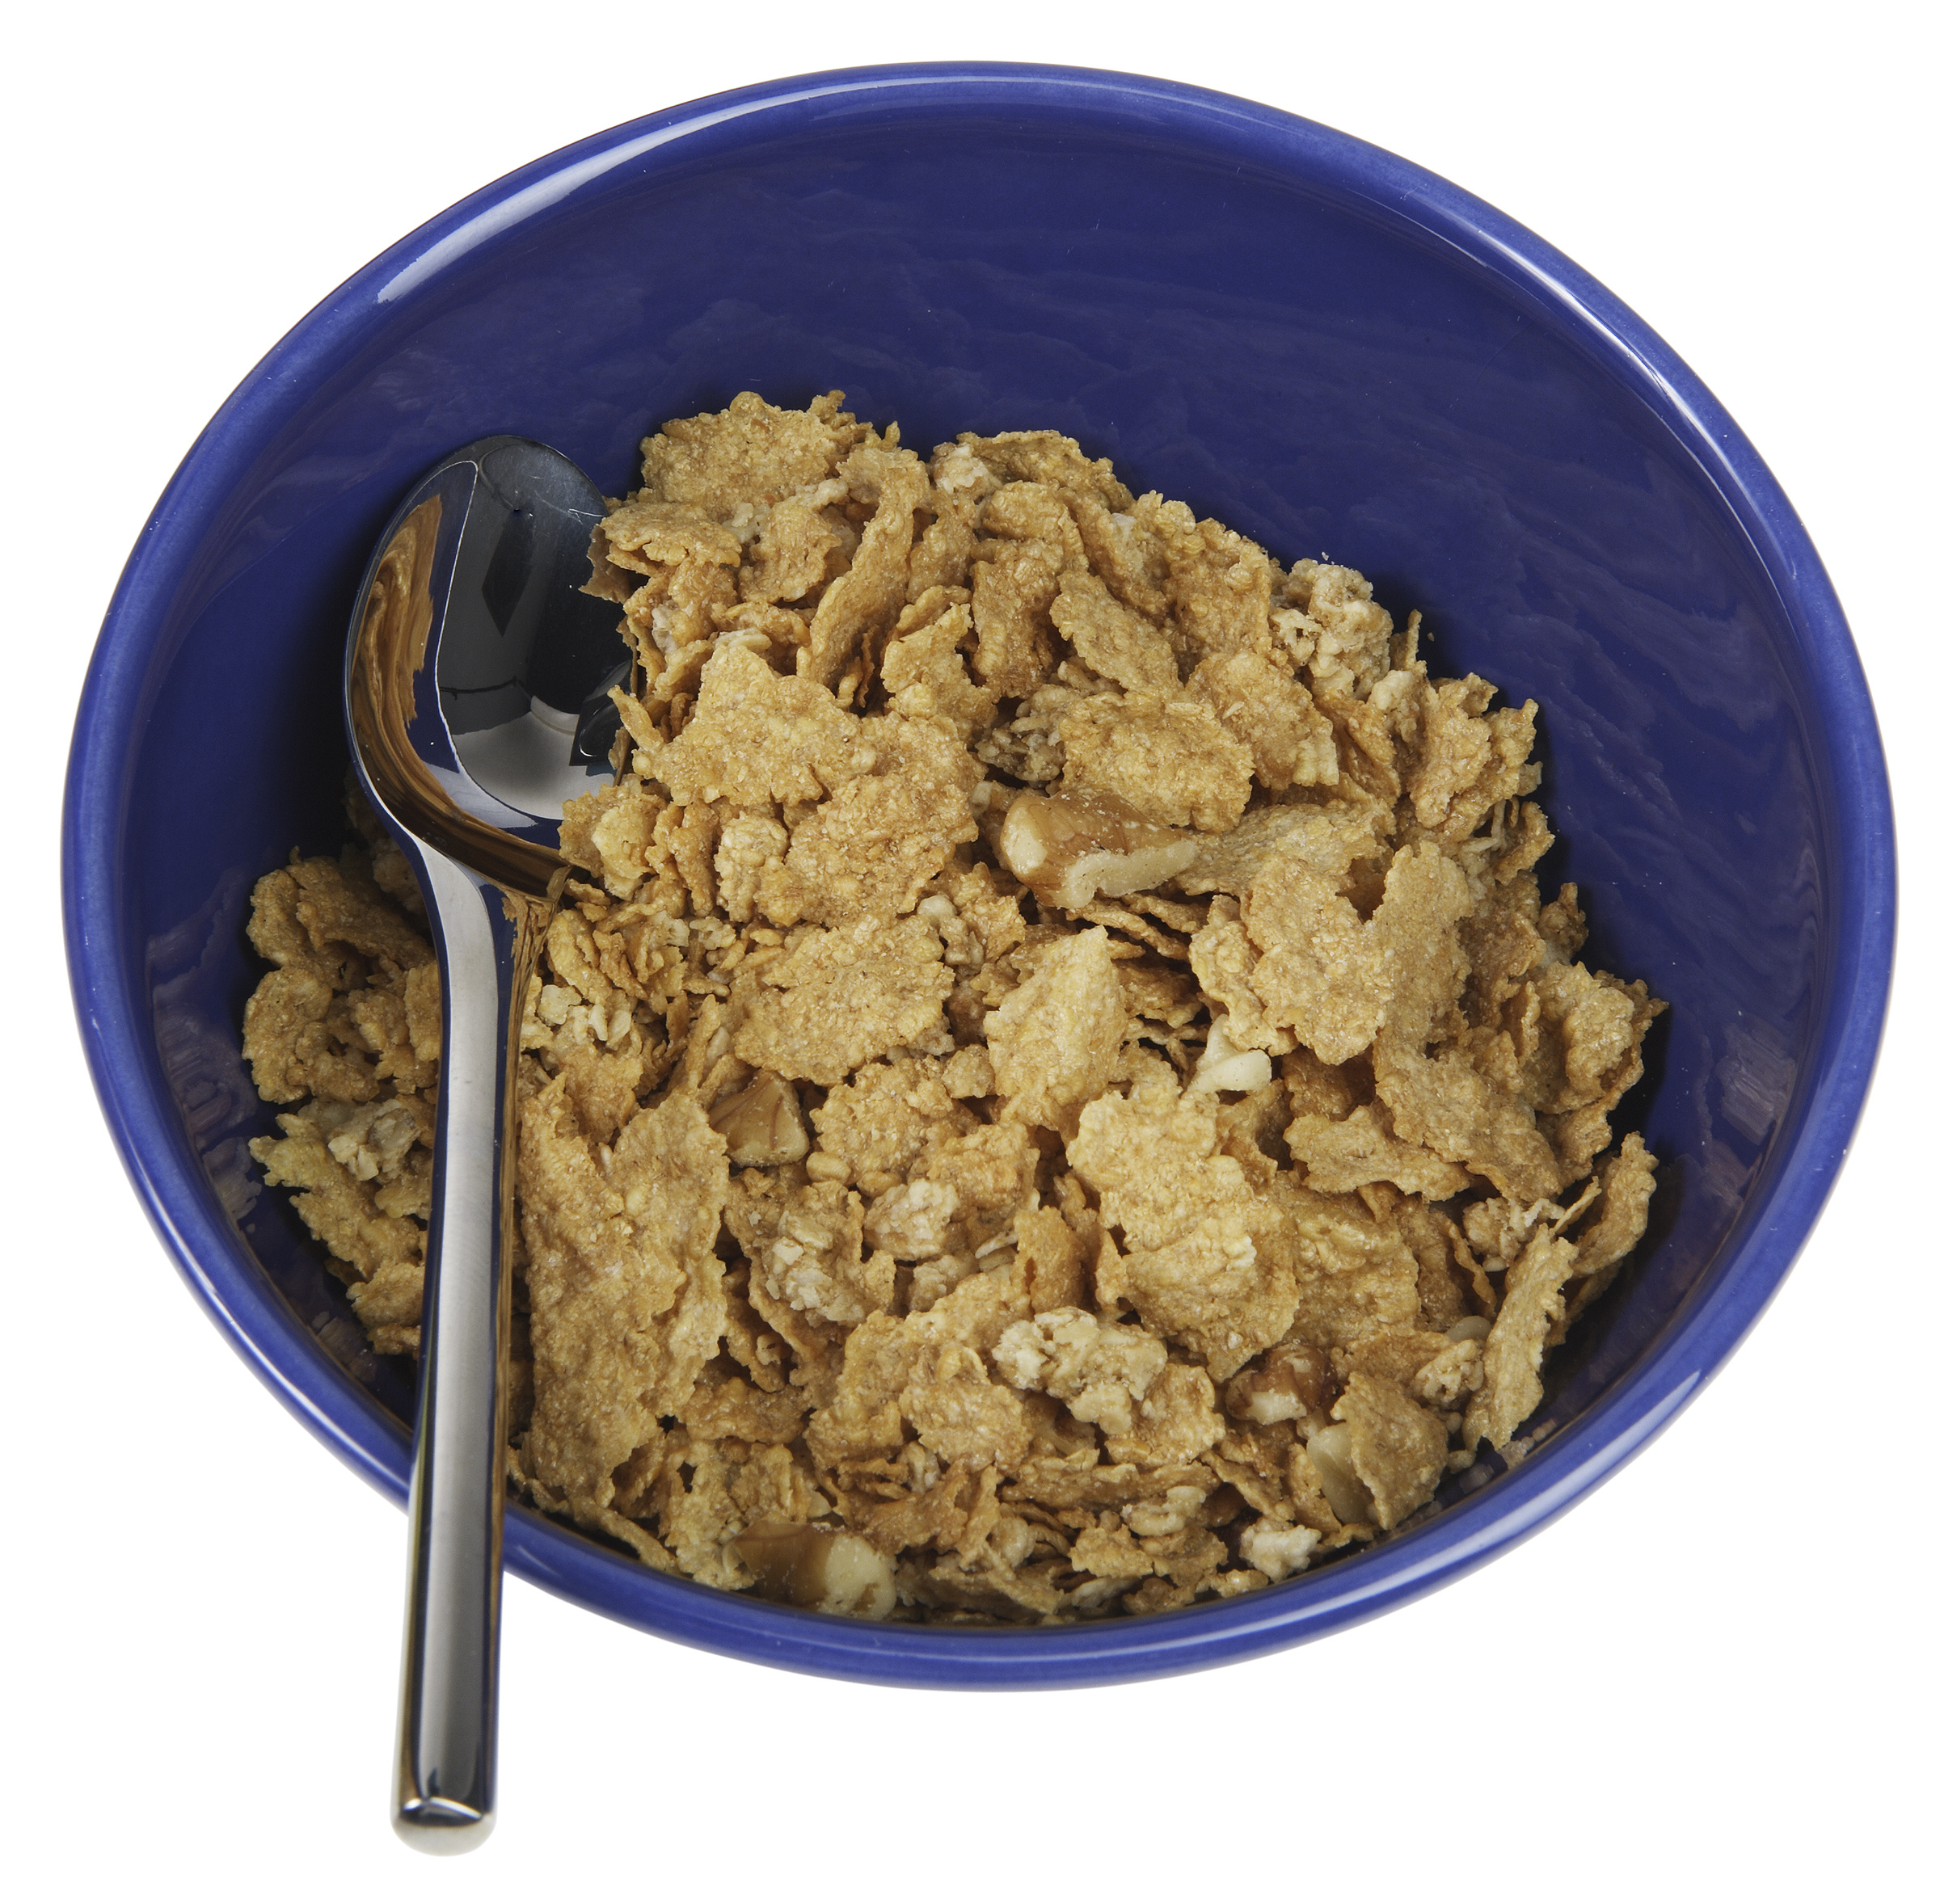 Dry Cereal Diet